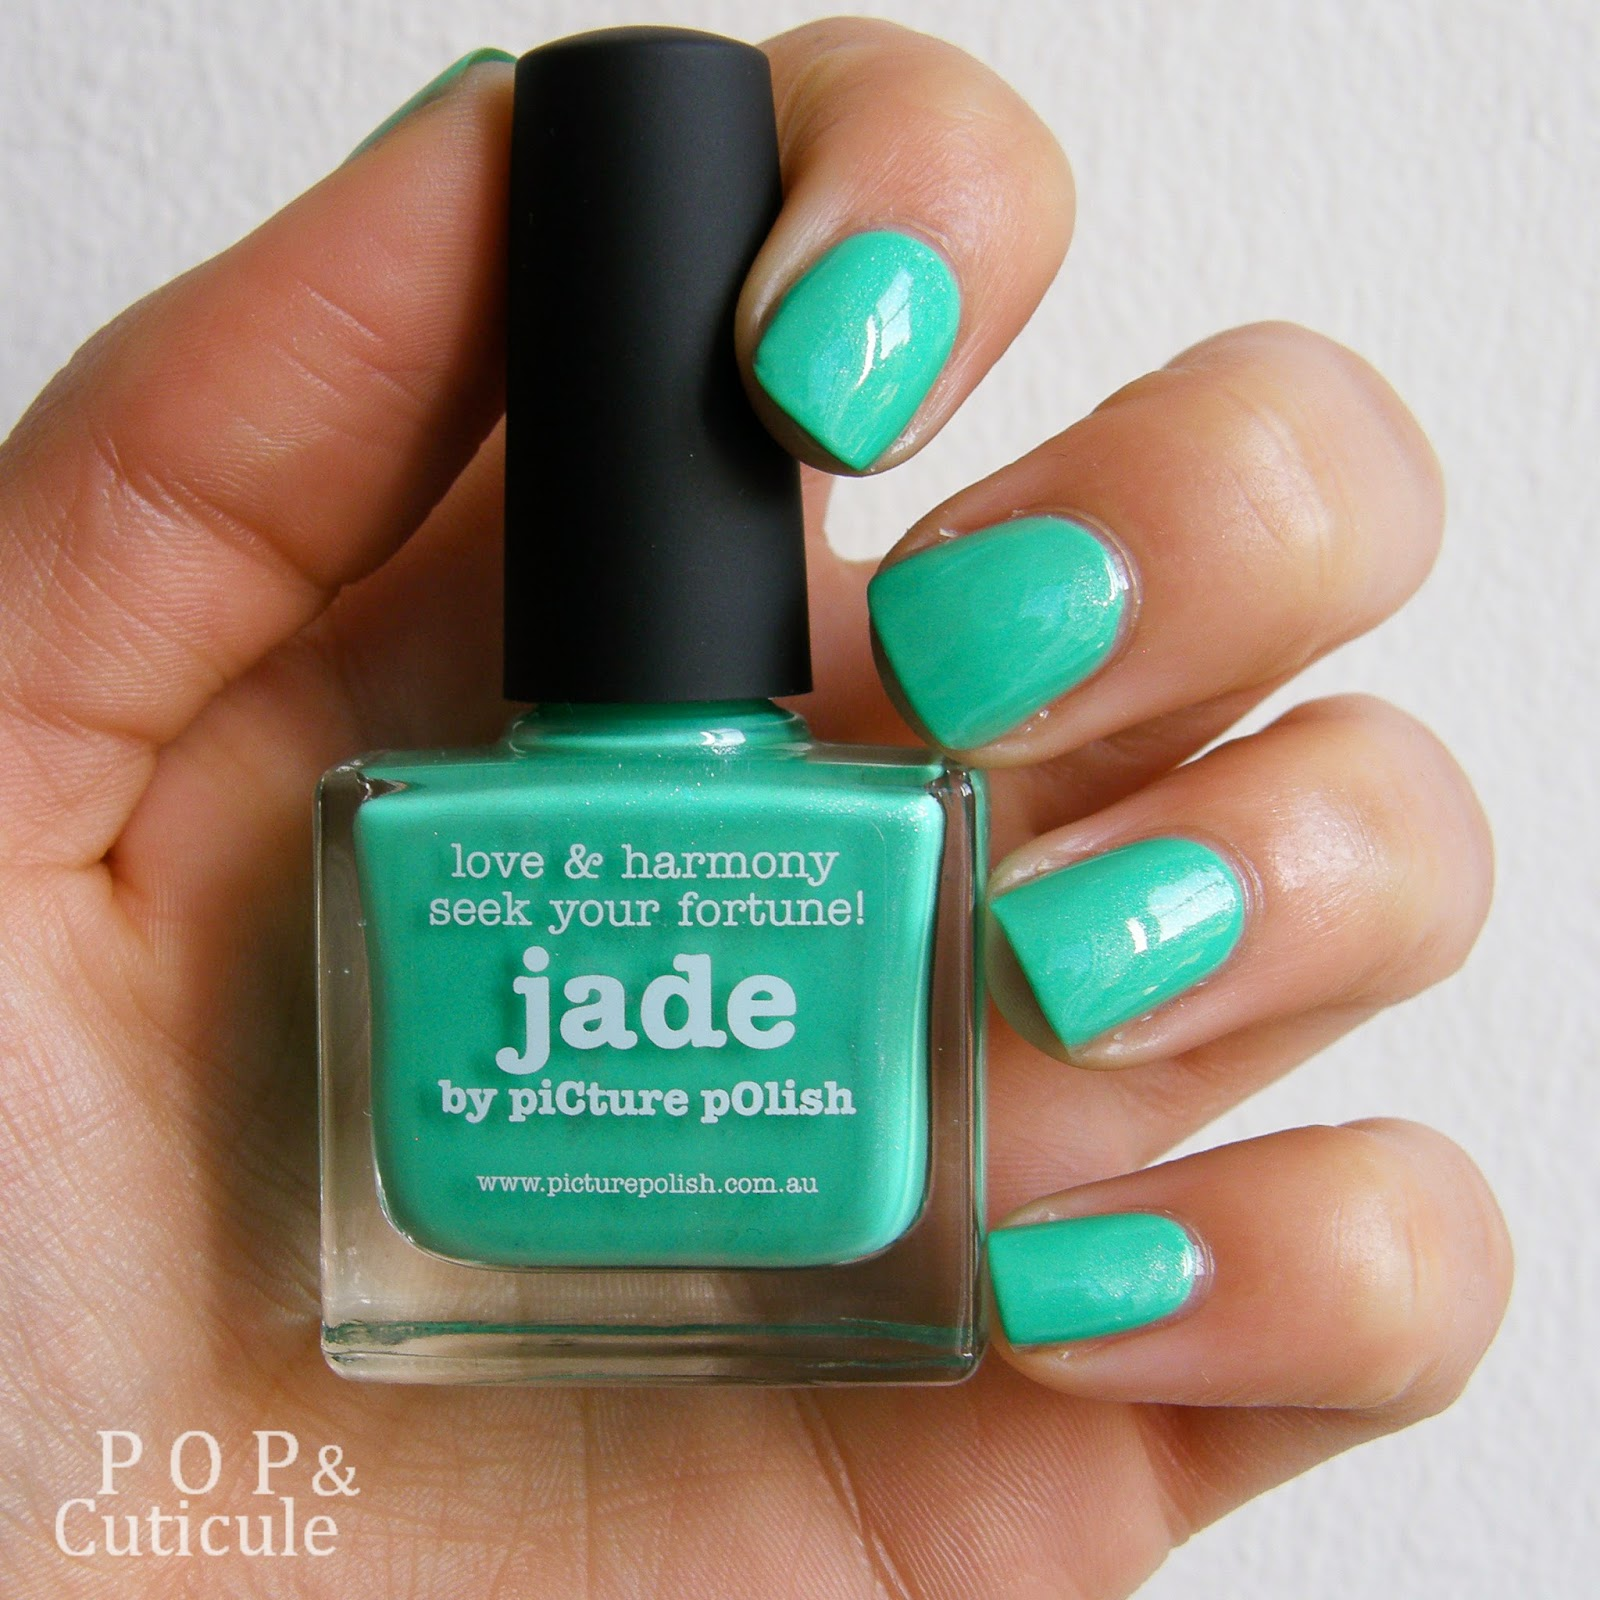 Pop & Cuticule Jade Picture Polish